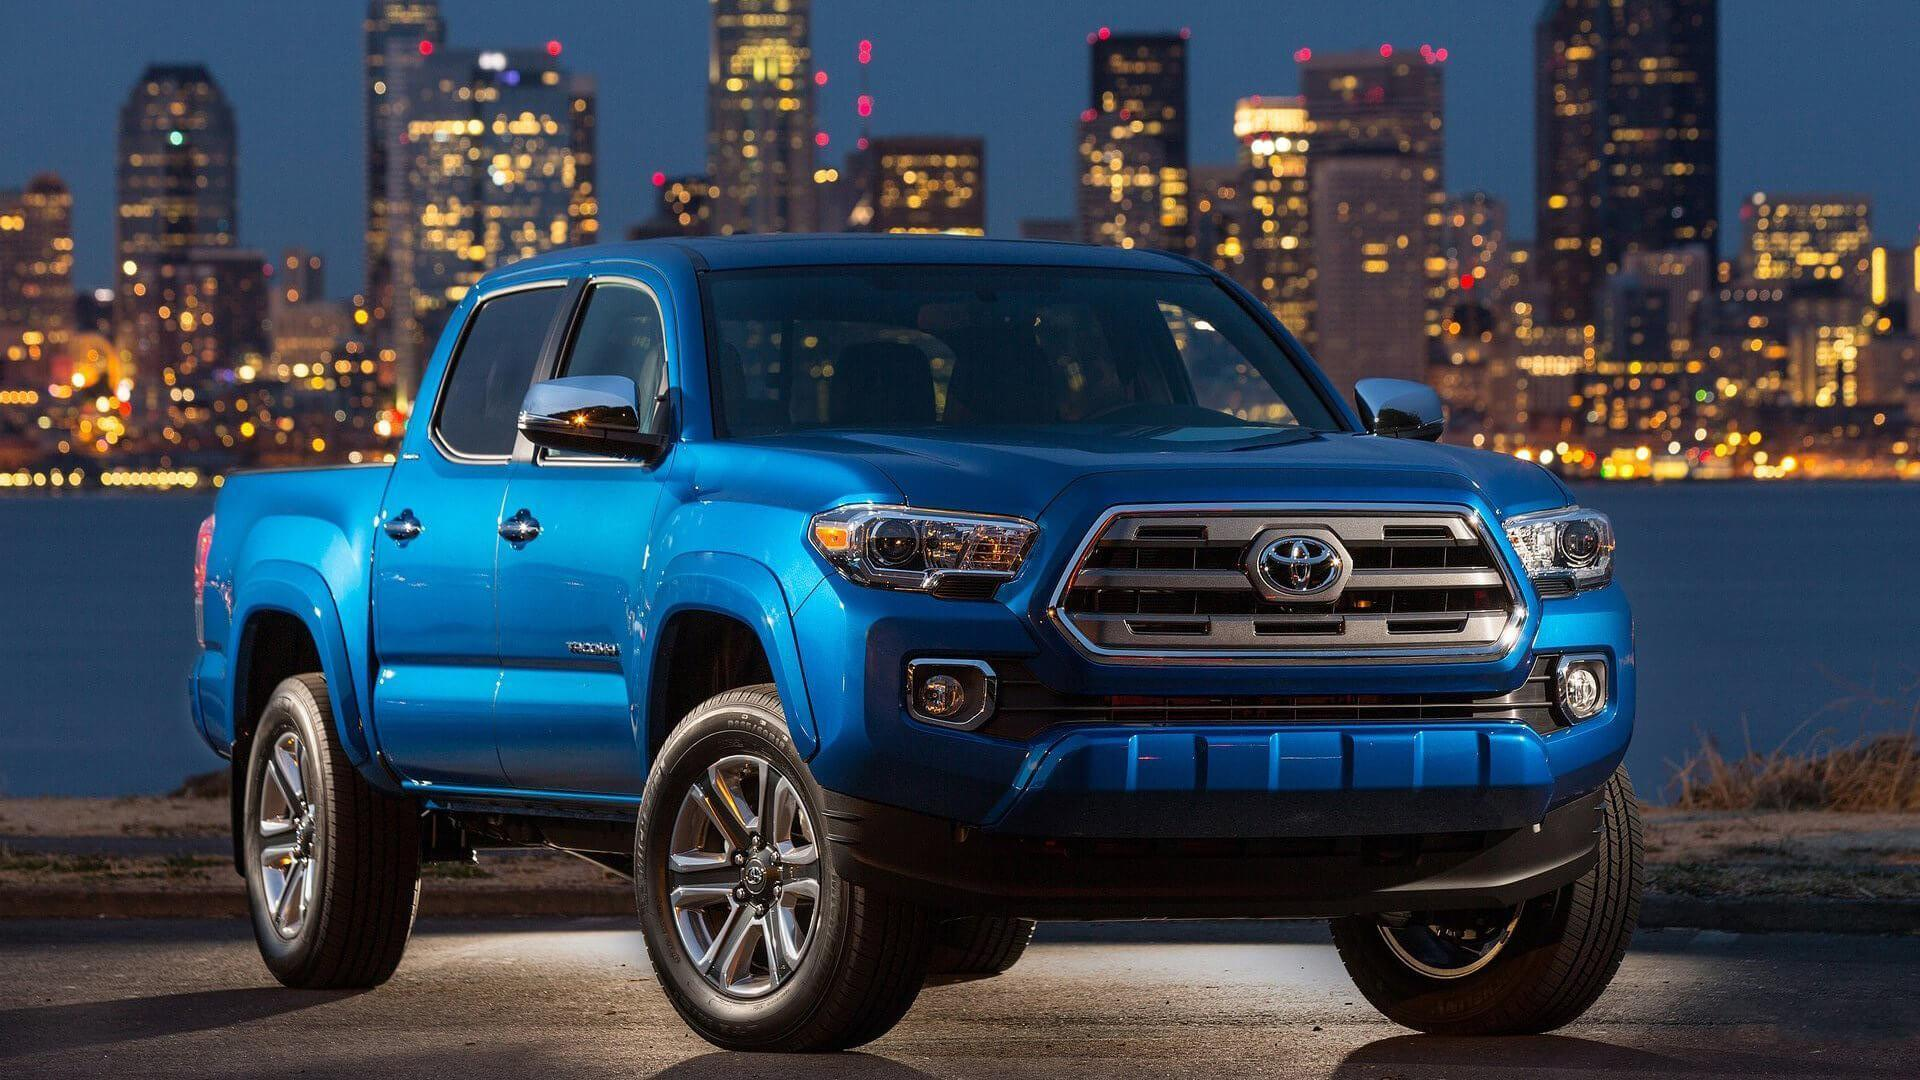 BLUE TOYOTA TACOMA HD WALLPAPERS